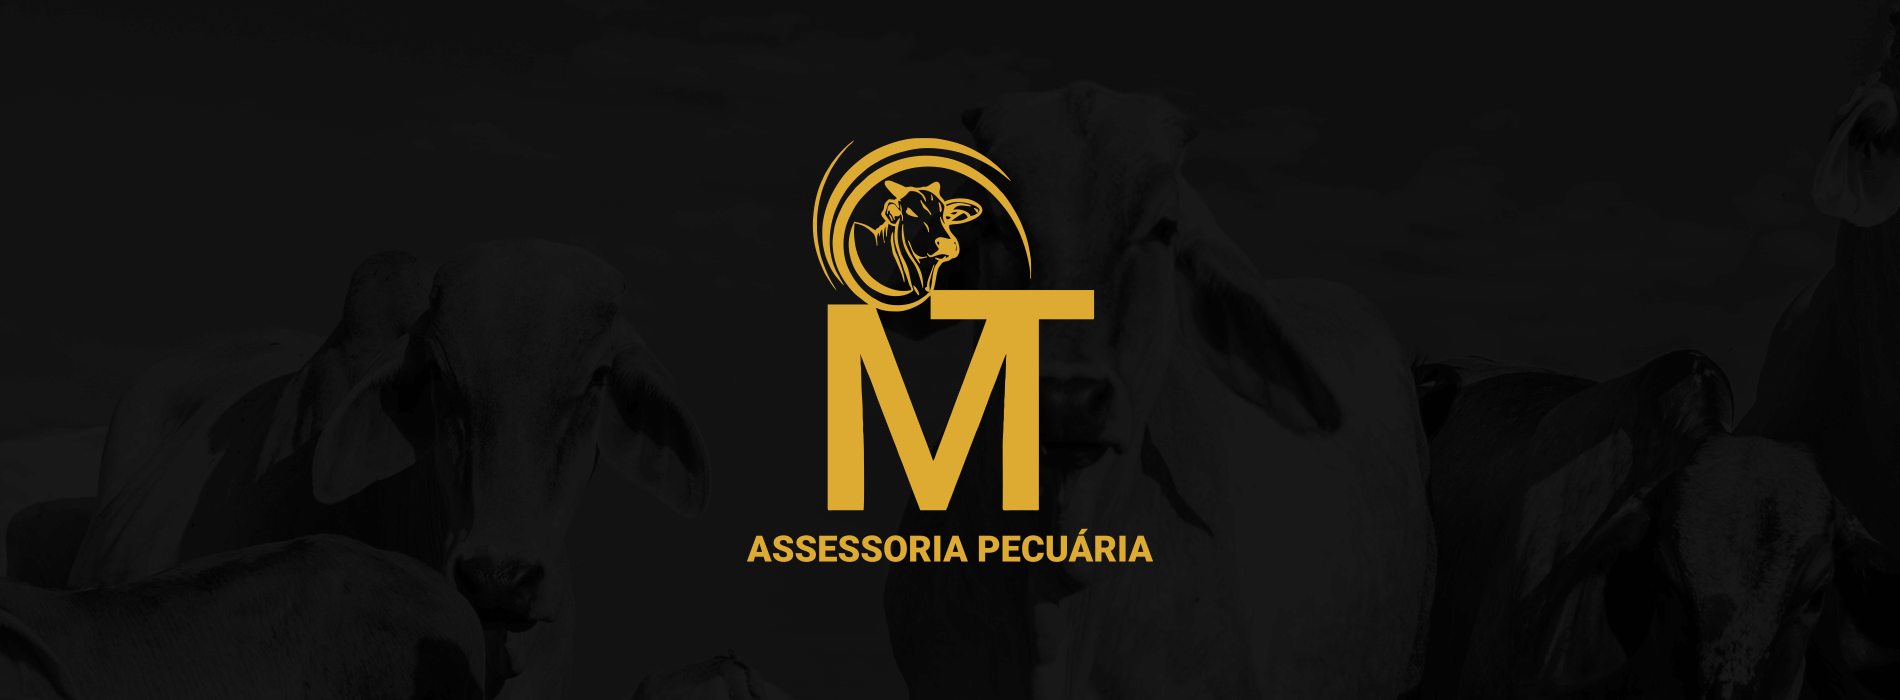 identidade_visual_branding_genius_marketing